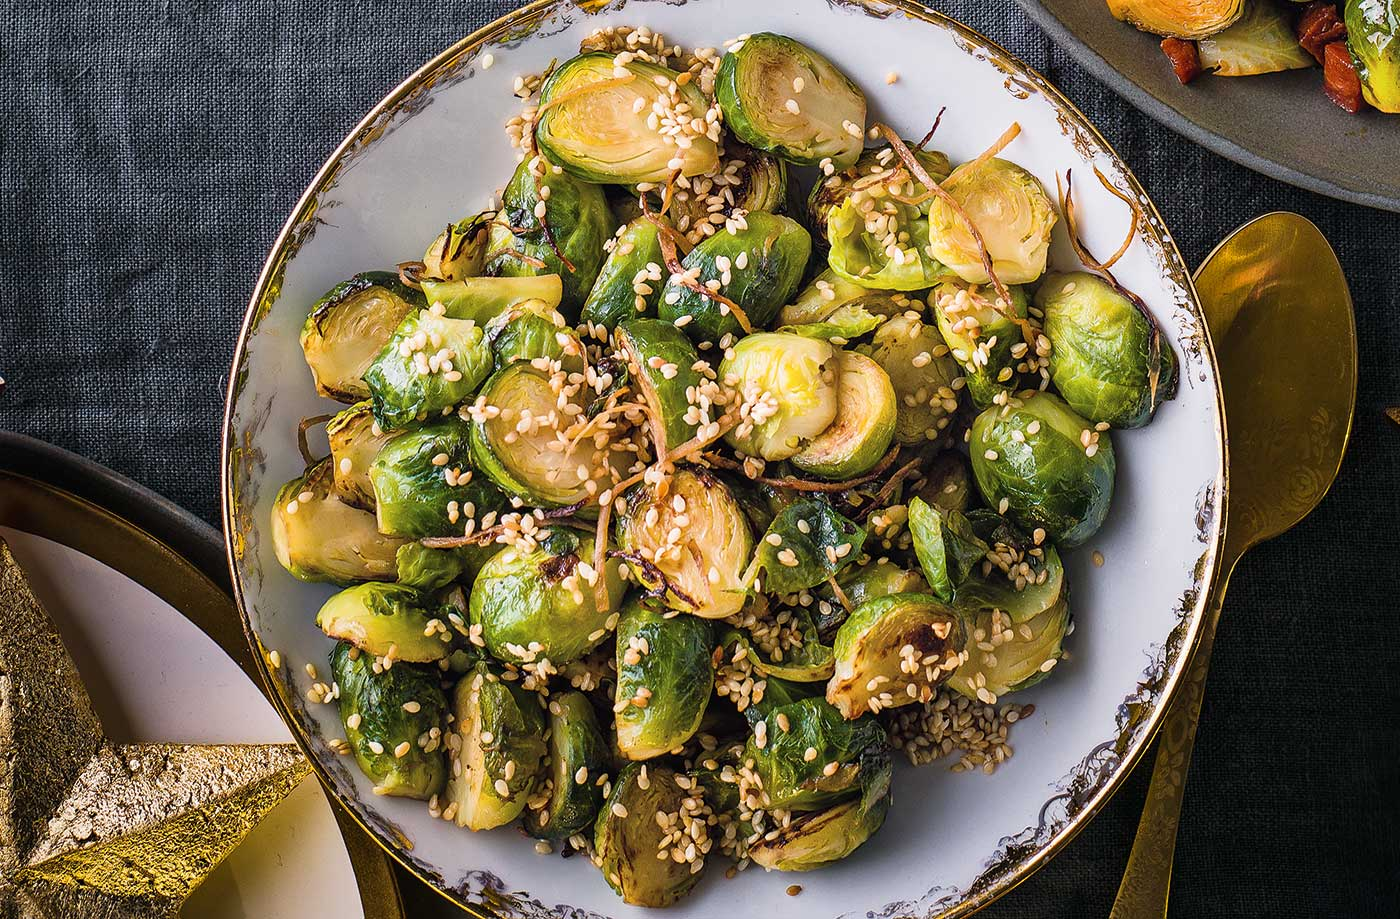 Ginger and sesame sprouts recipe